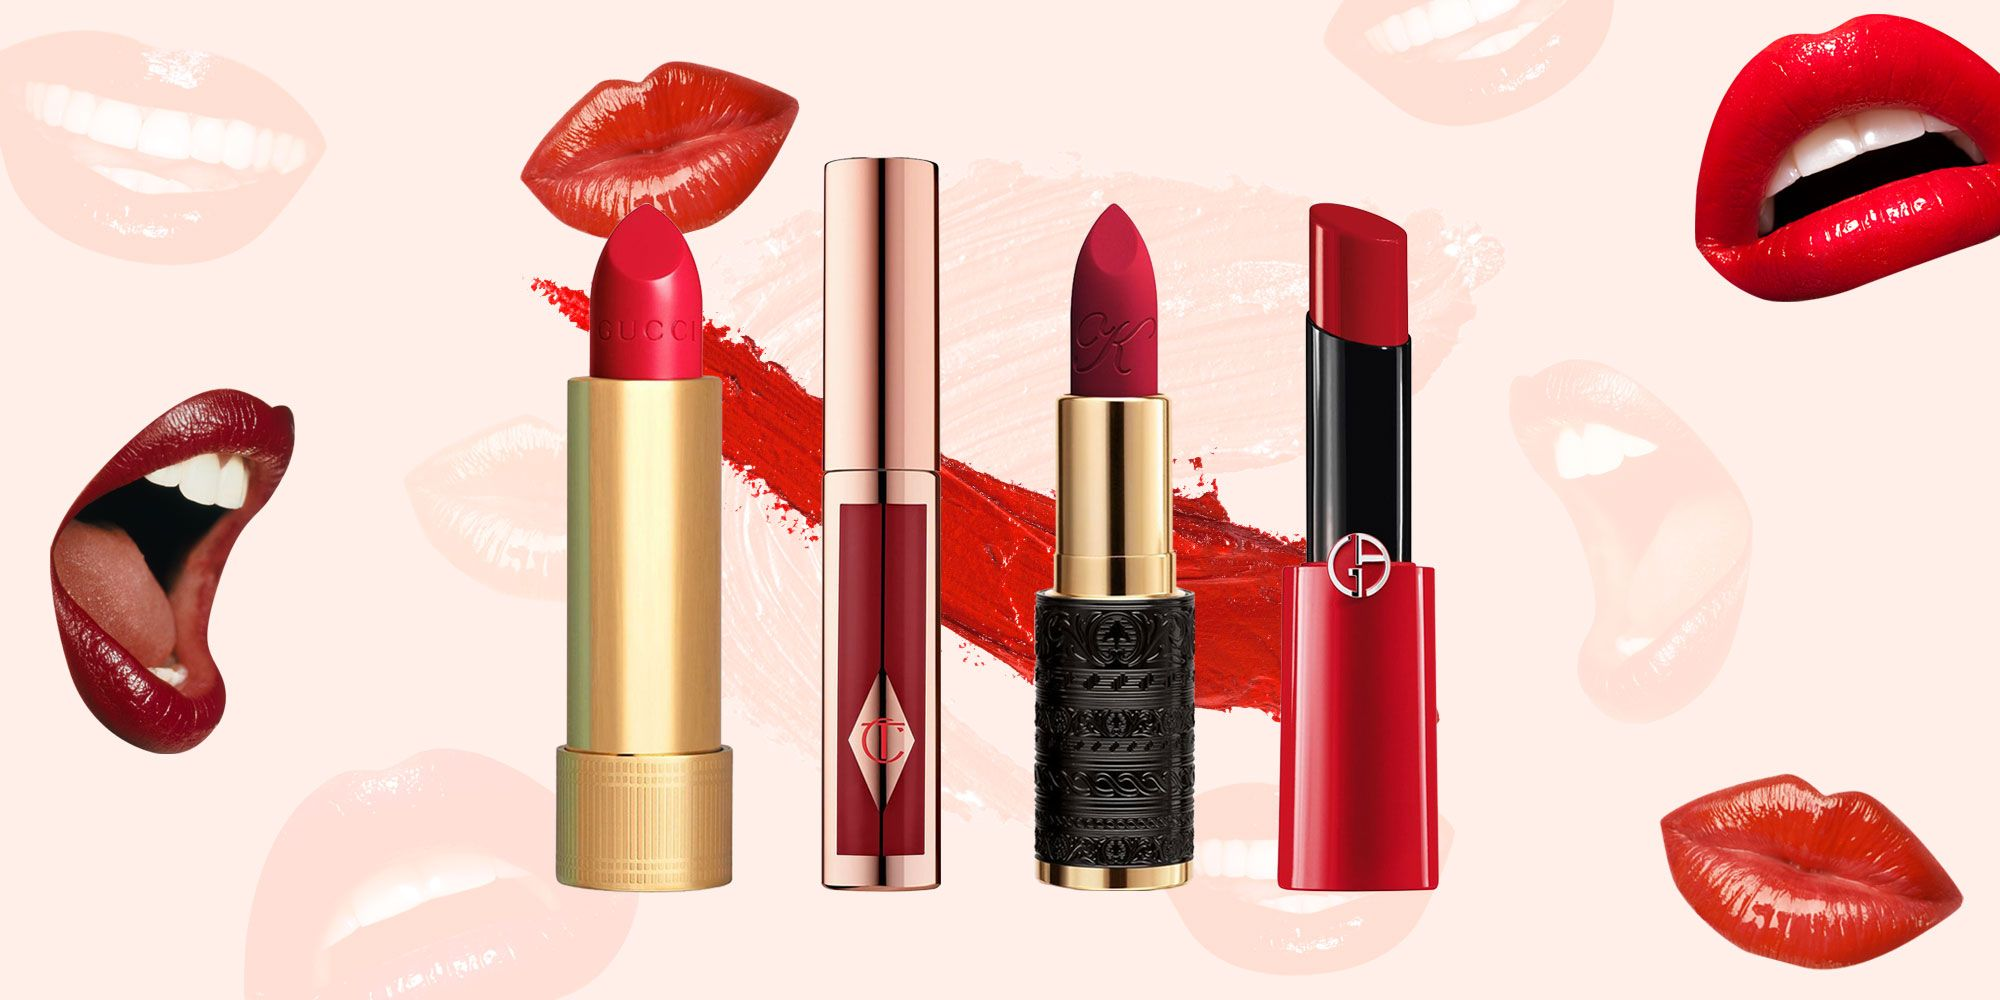 20 Best Red Lipsticks Of 2020 Most Popular And Iconic Red Lipsticks